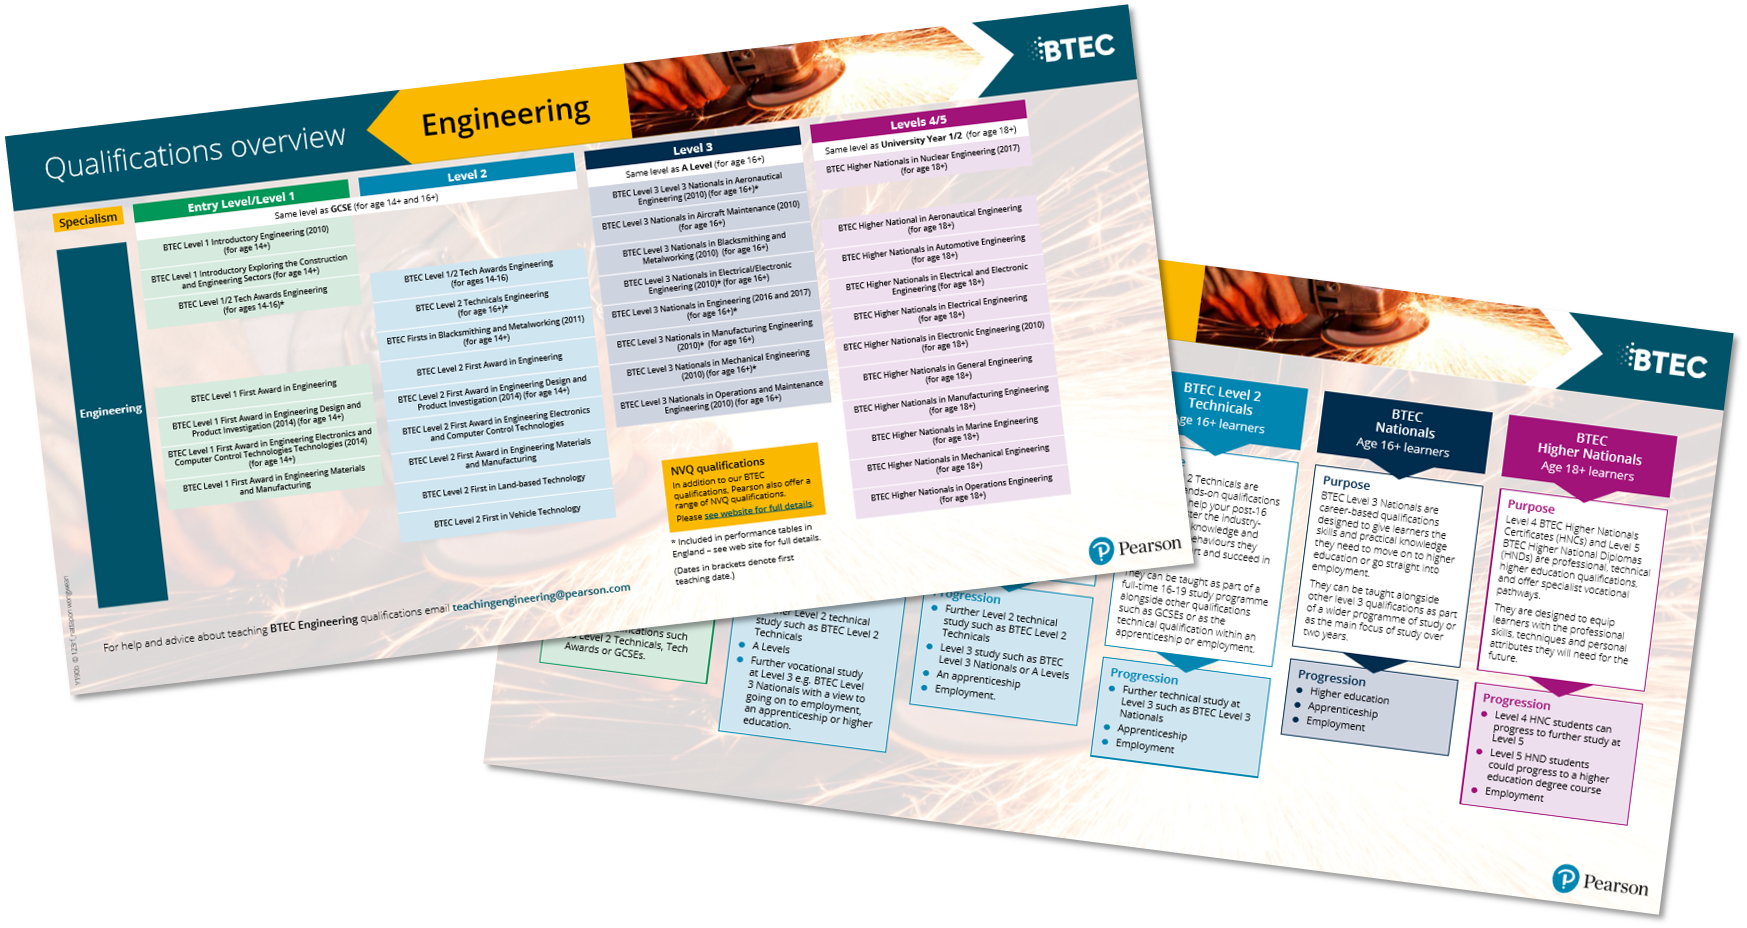 BTEC Engineering Qualification Overview Table